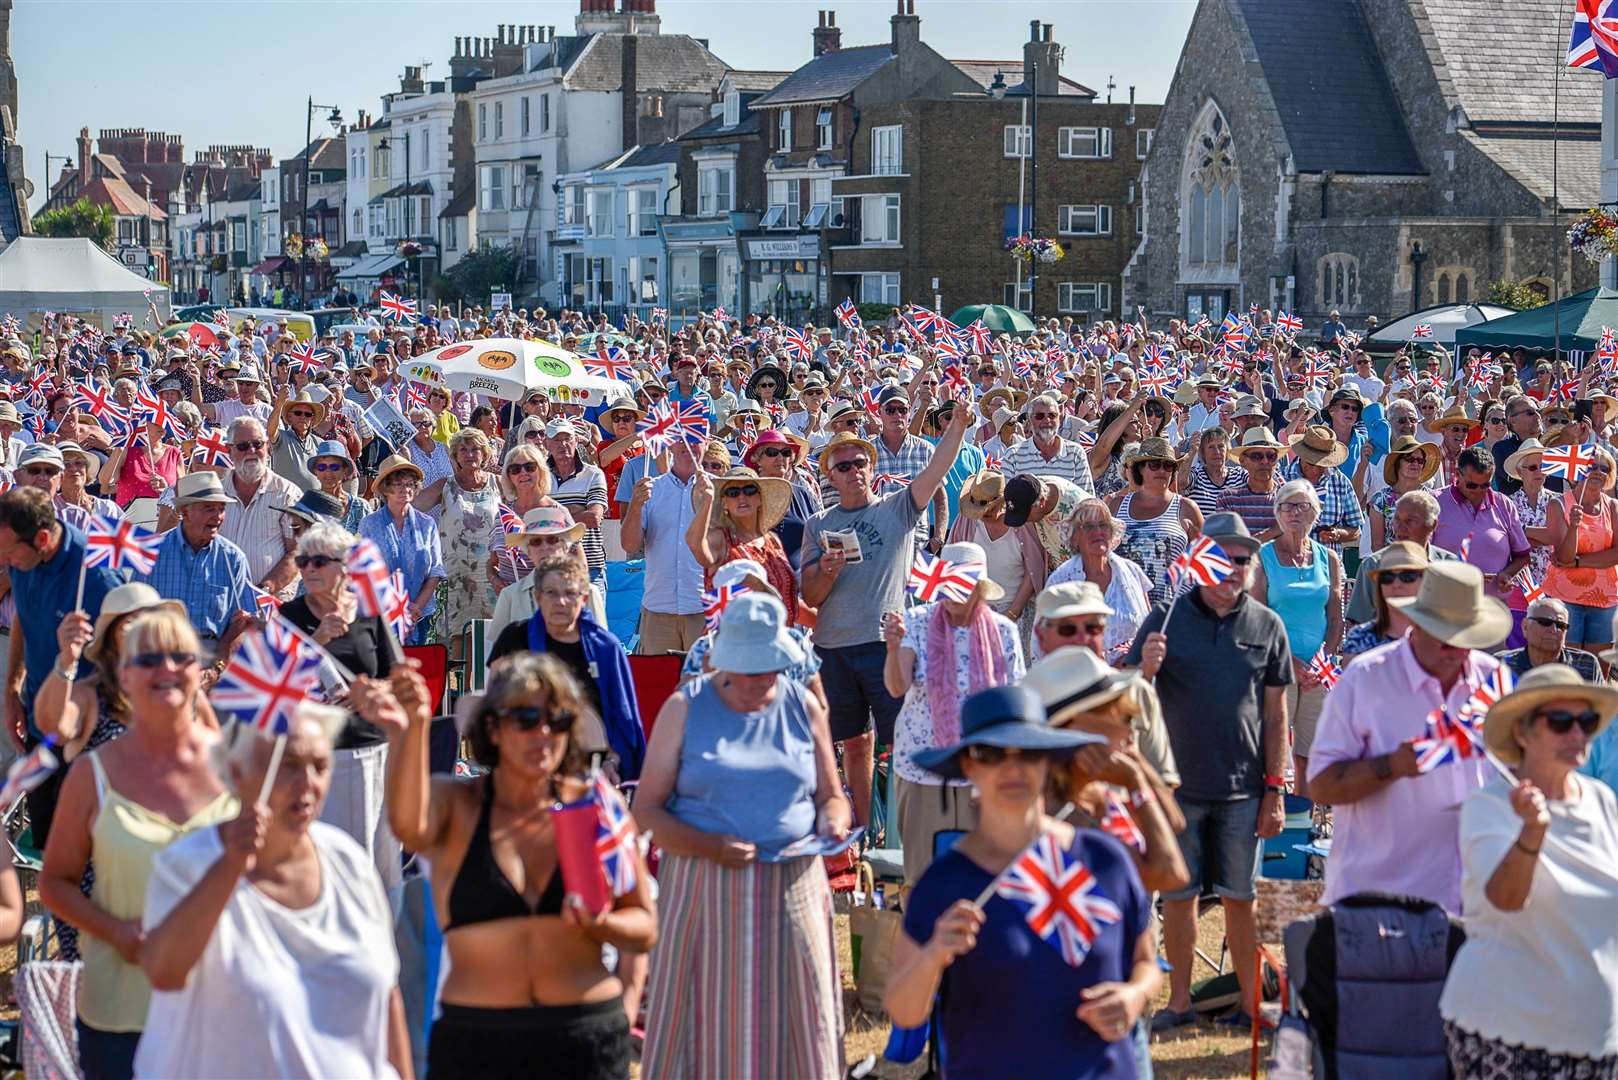 The annual Royal Marines concert in Walmer is enjoyed by thousands of people